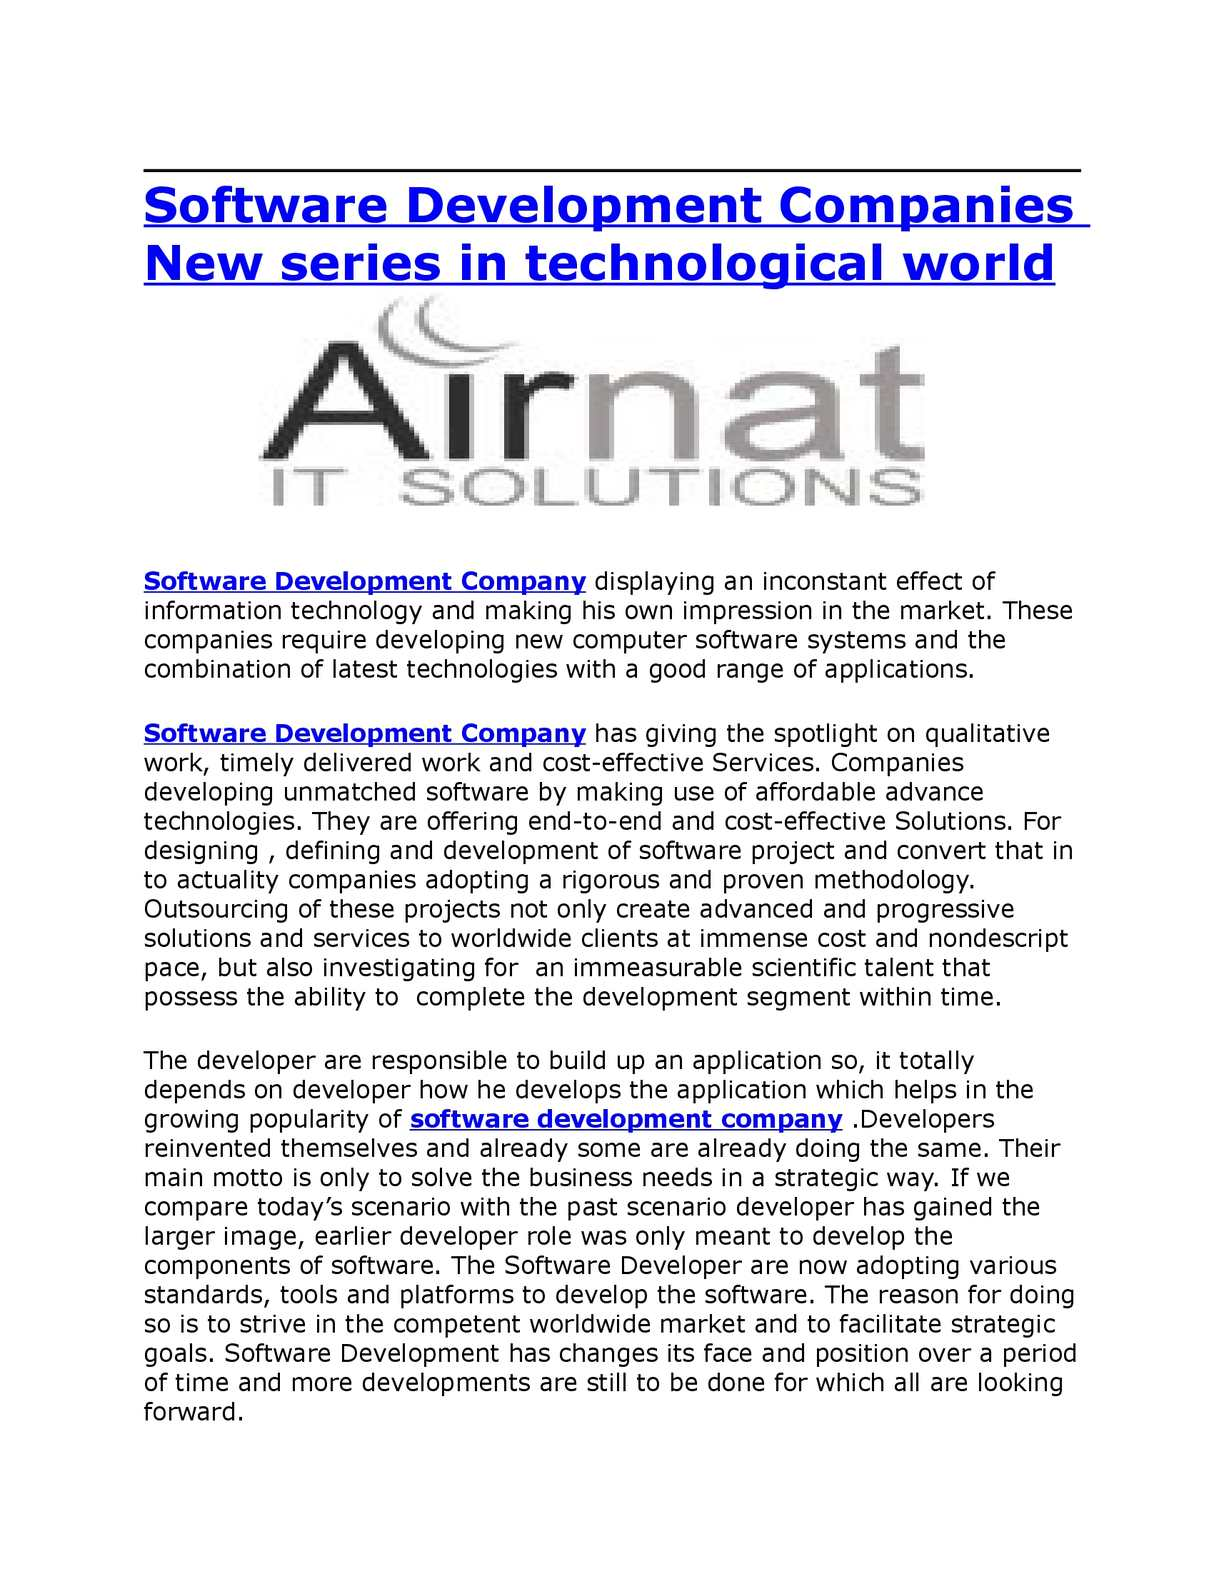 Software Developer Companies In Calaméo Software Development Companies New Series In